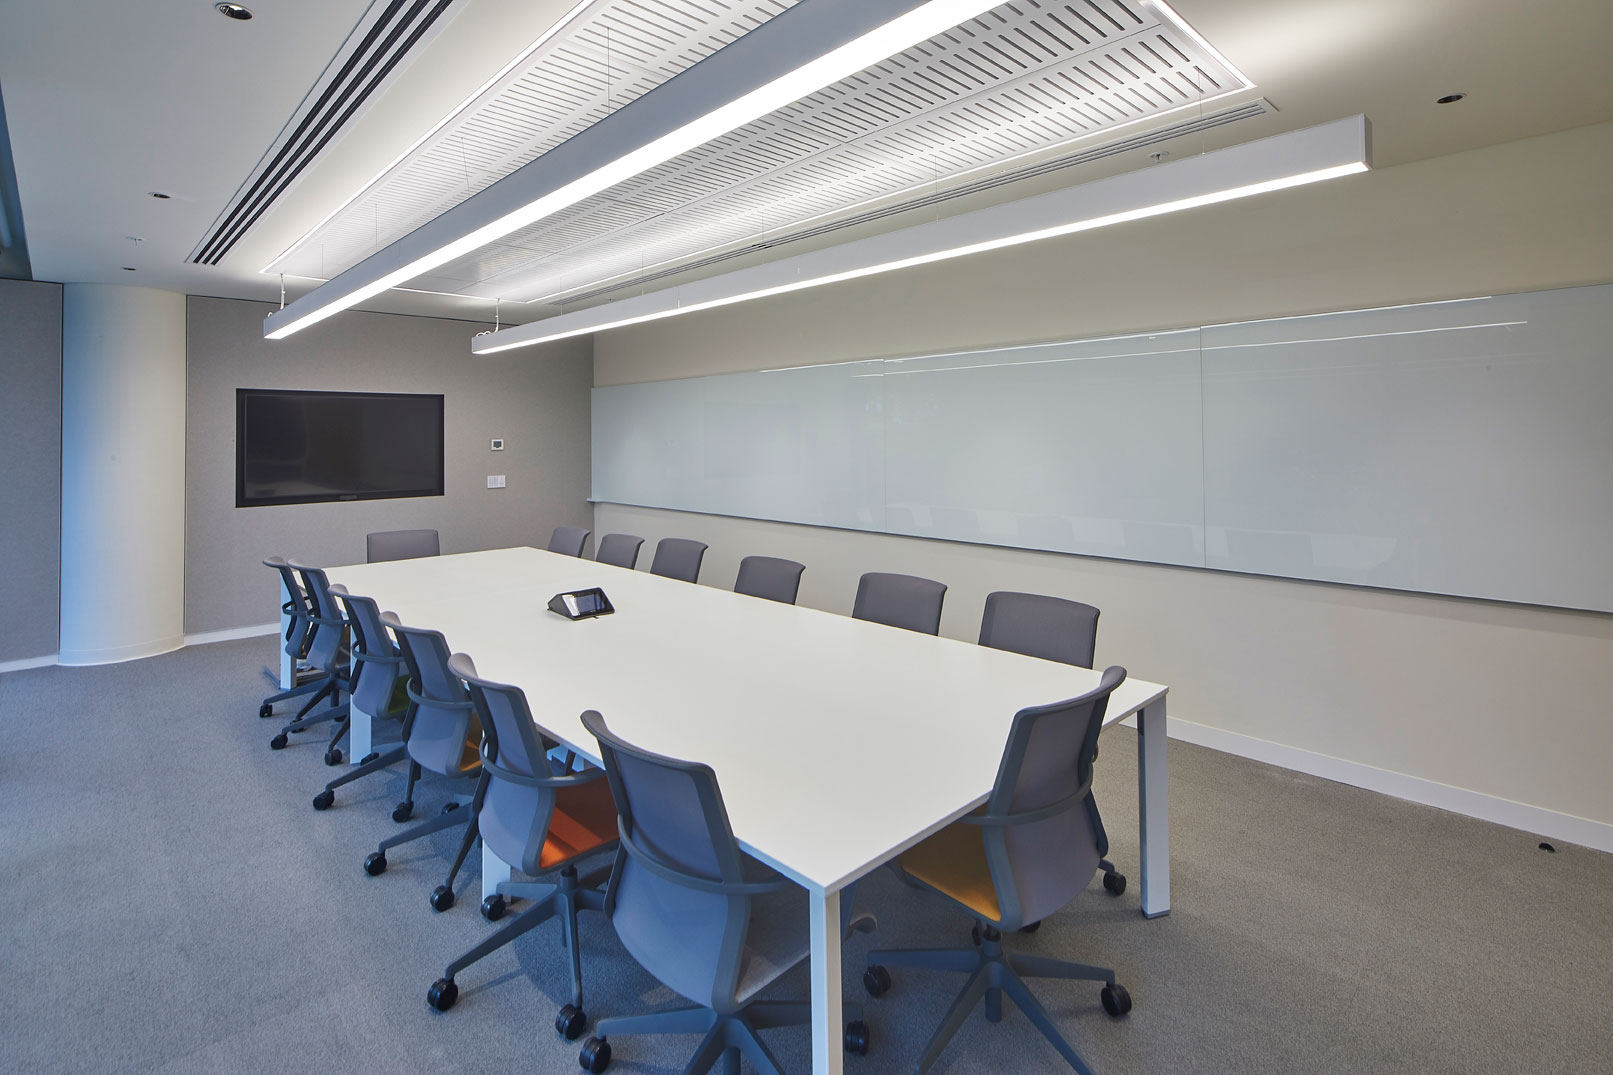 Office meeting room audio visual fitout with touch panel control and LED display screen